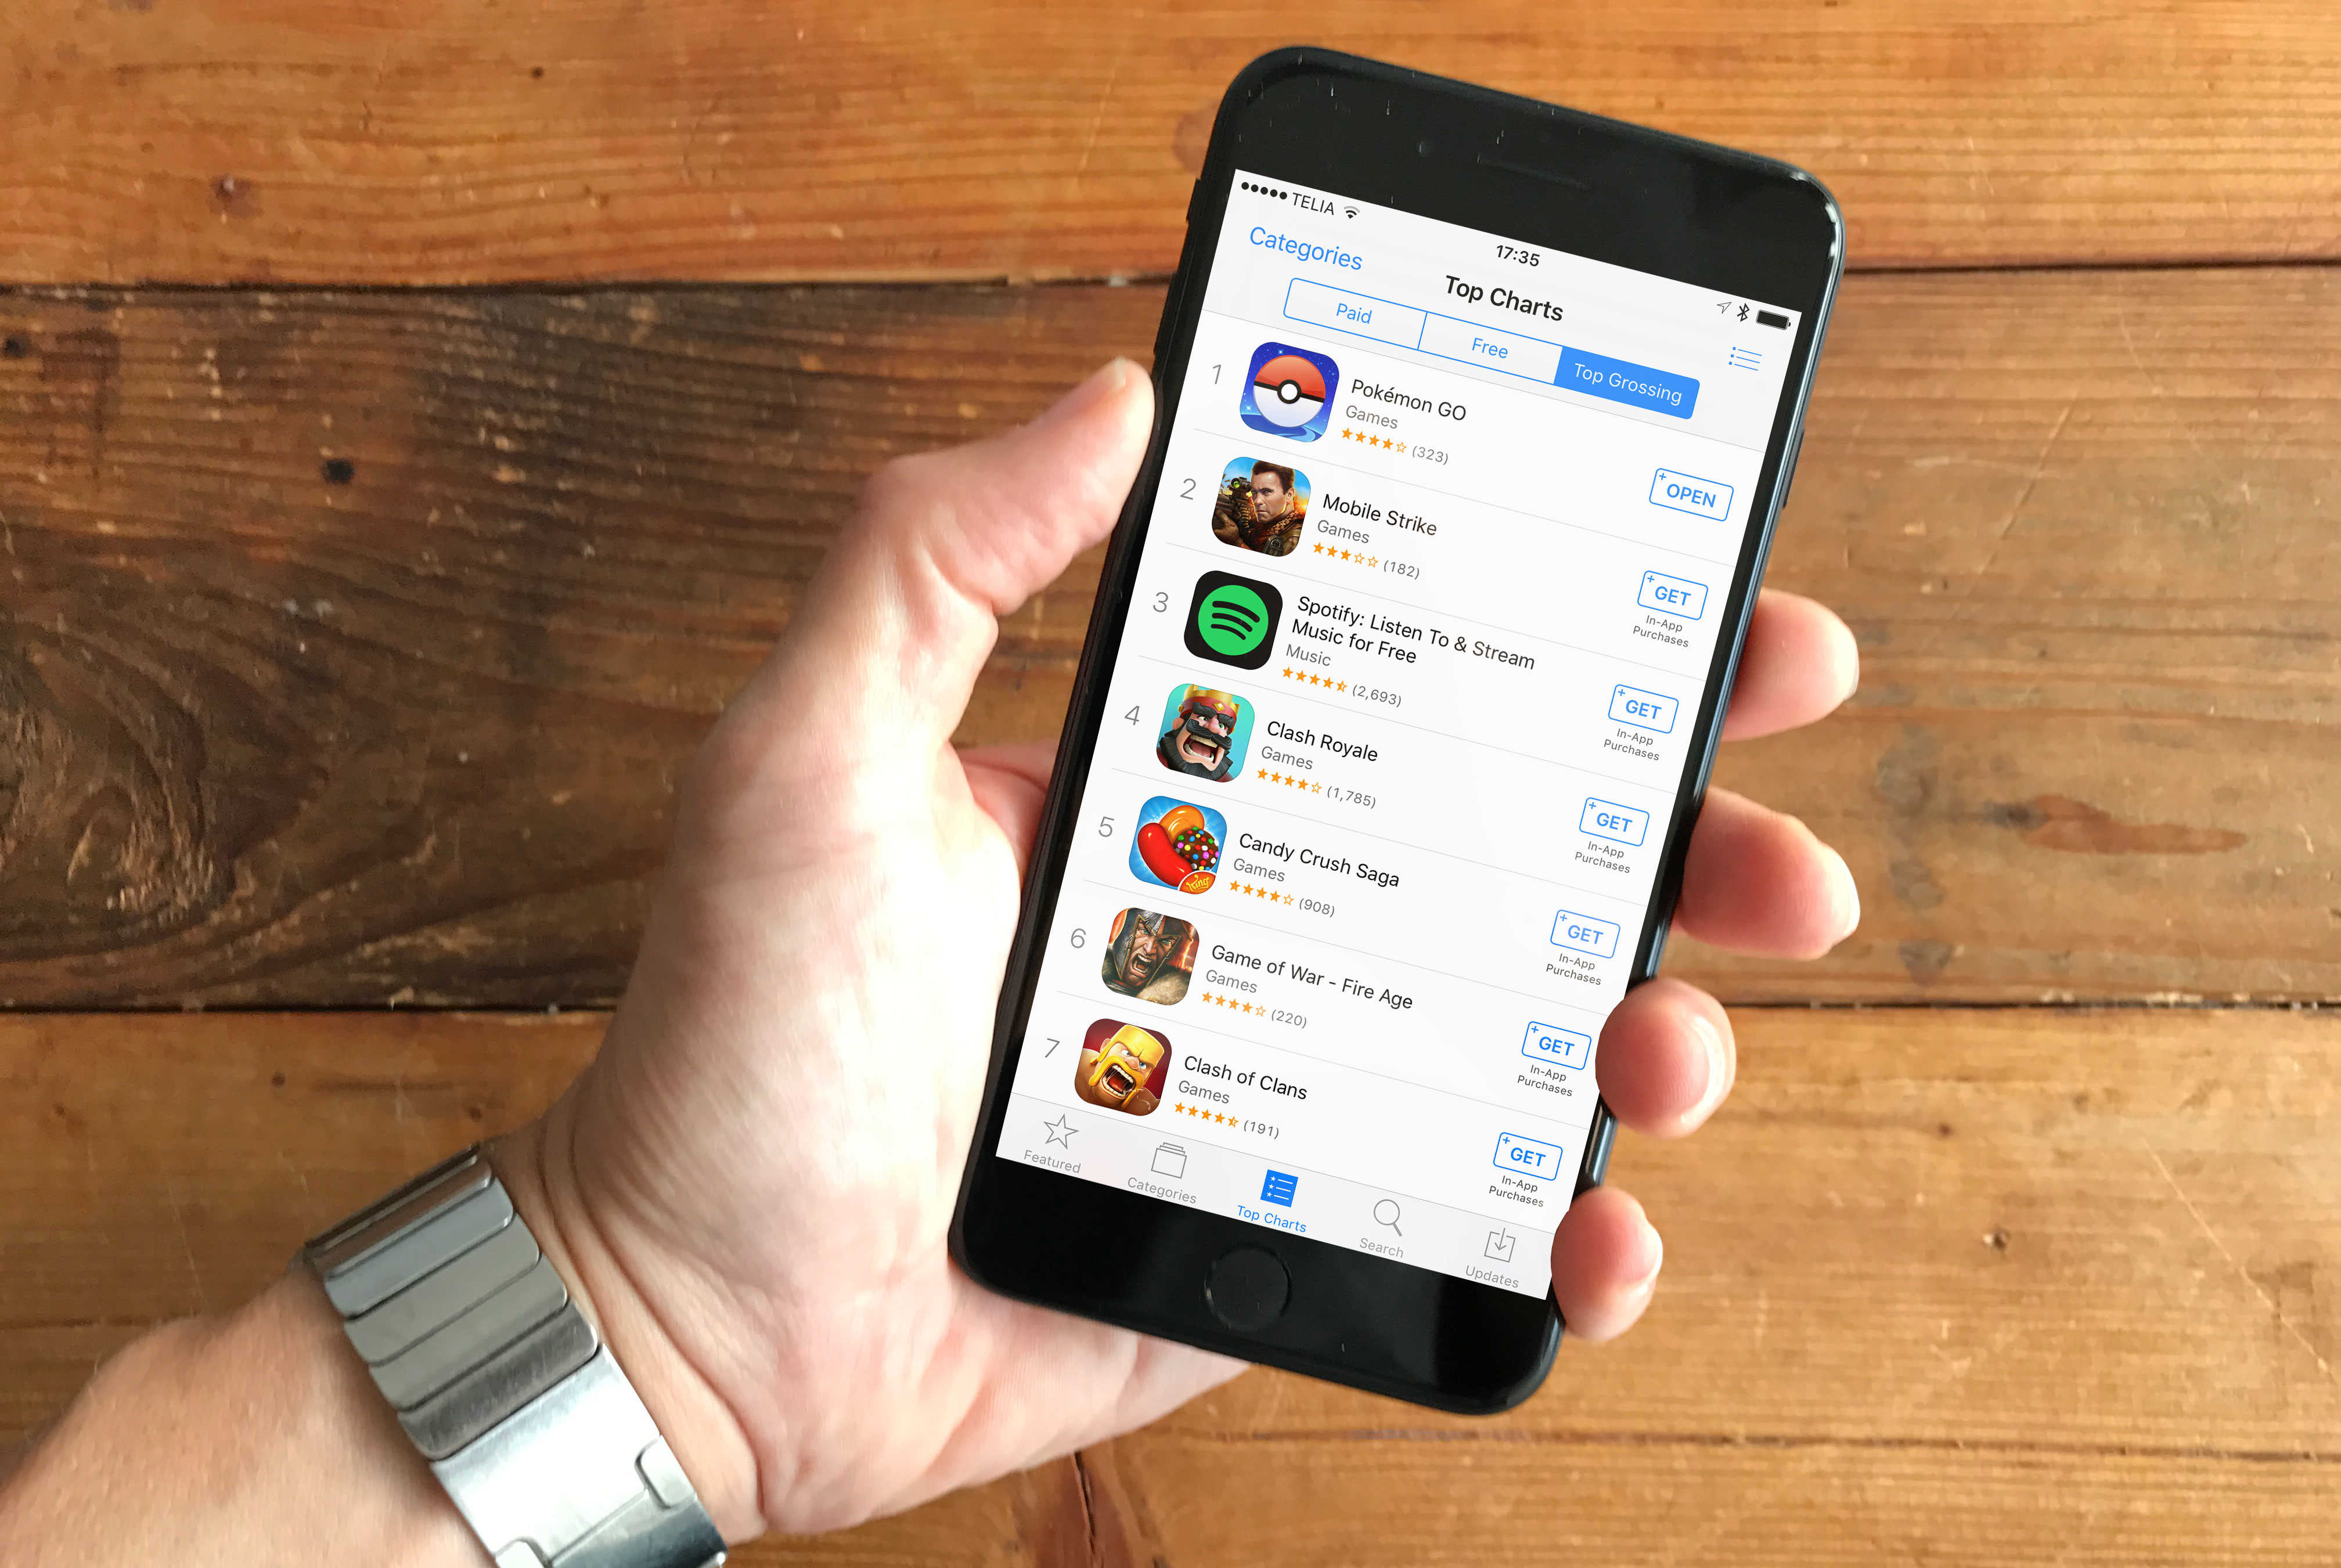 Only one of the top 200 grossing apps is a paid app